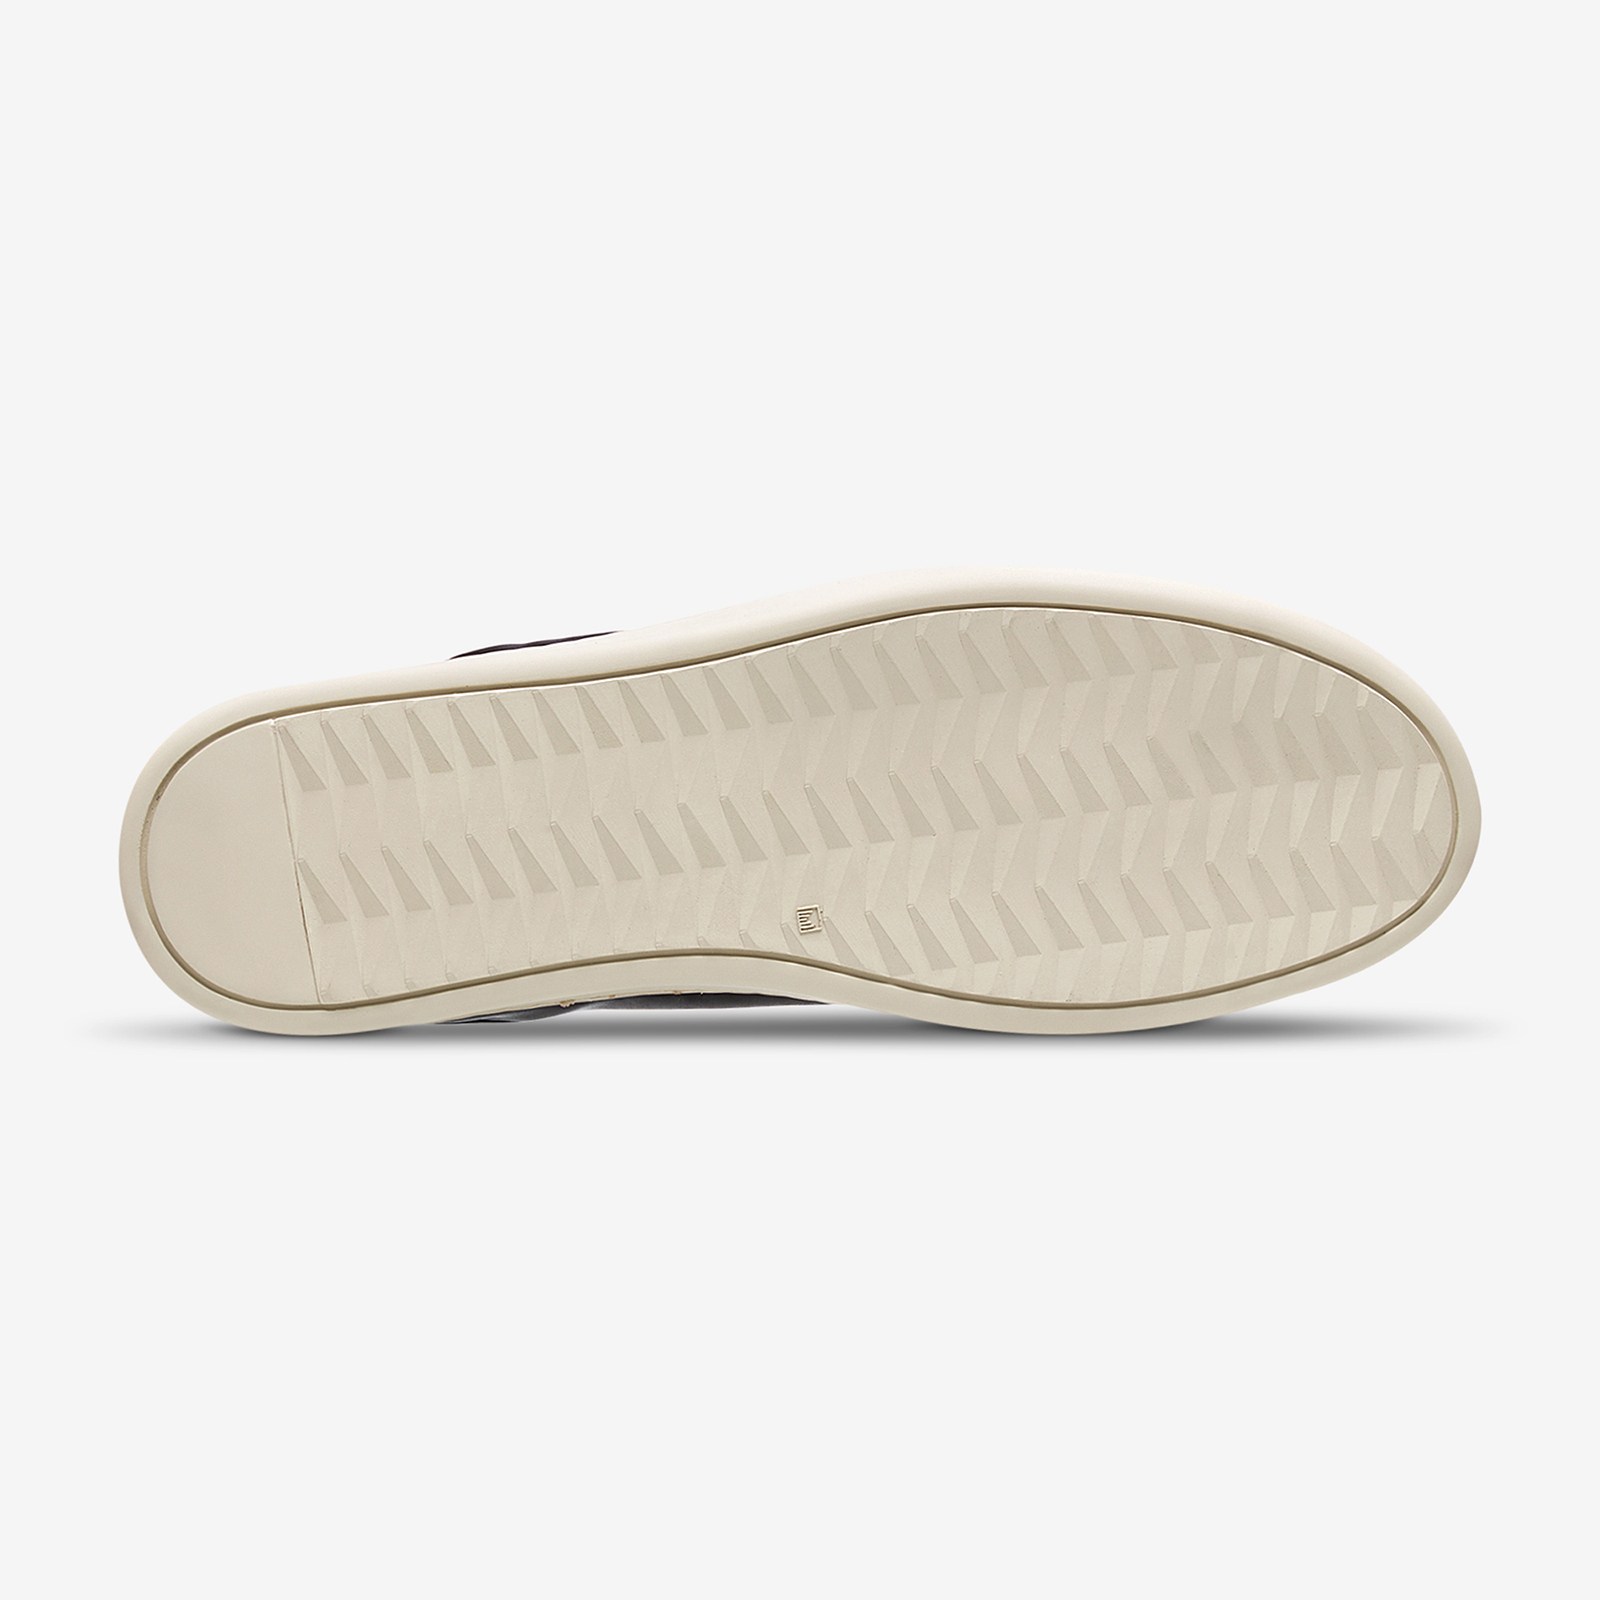 Sneakers sole product image